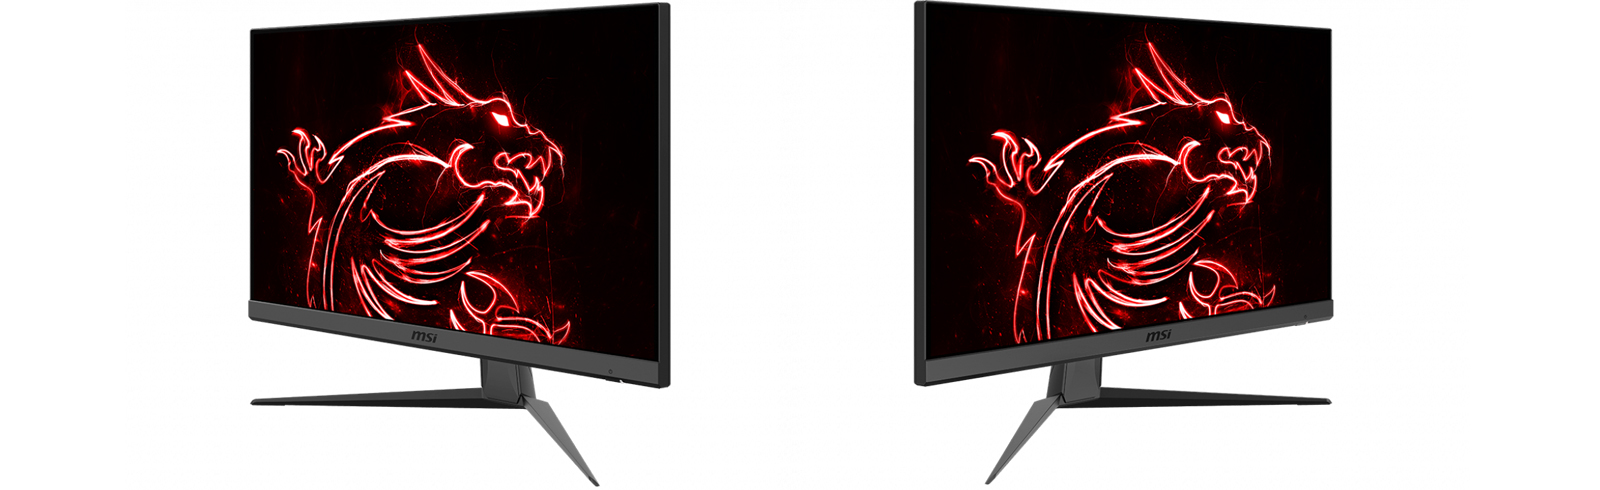 """The MSI Optix G243 goes official with a 23.8"""" FHD VA display, 165Hz refresh rate"""